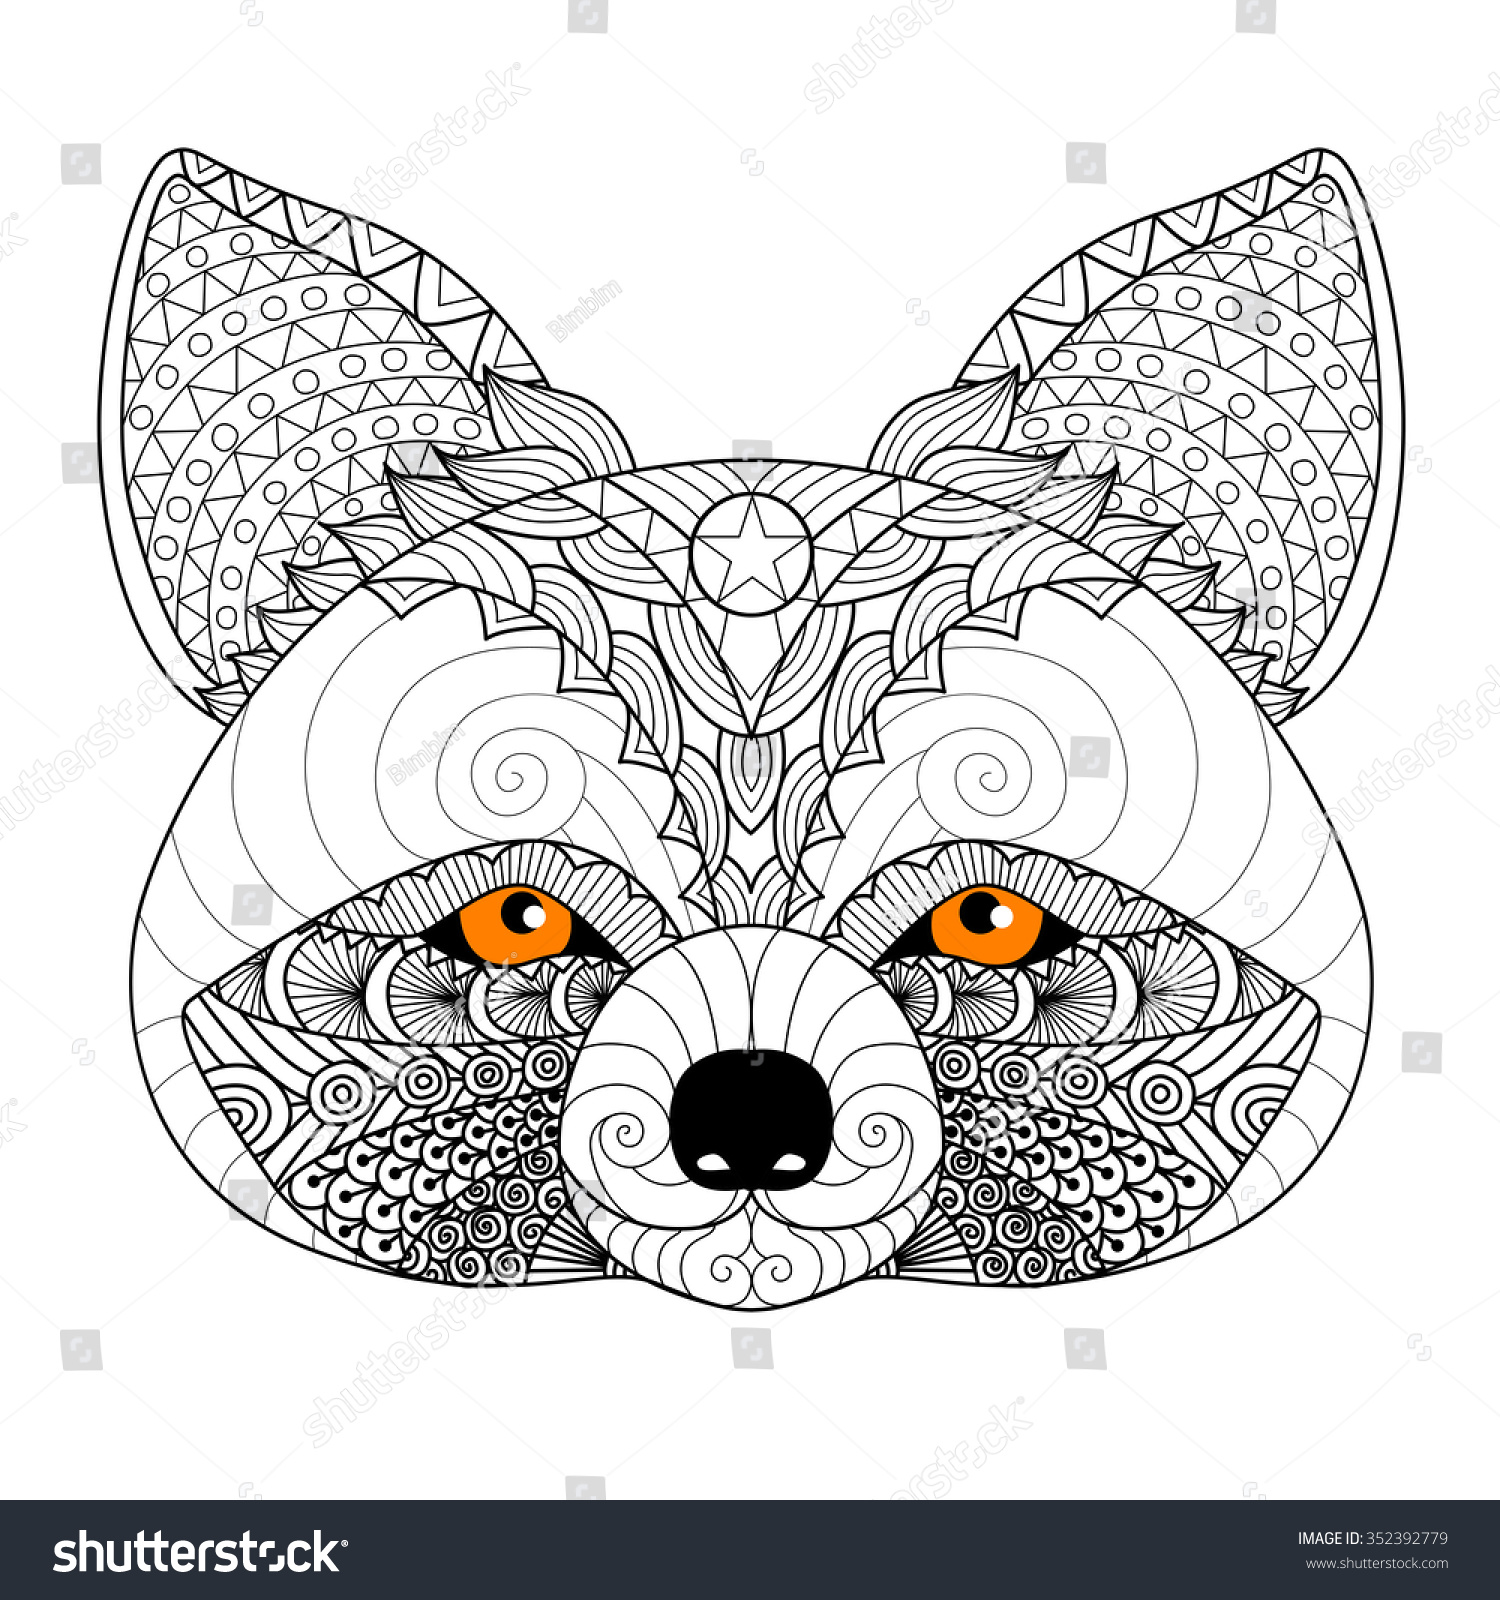 Coloring pages raccoon - Zentangle Raccoon For Coloring Page For Adulttattoo Logo Shirt Design And Other